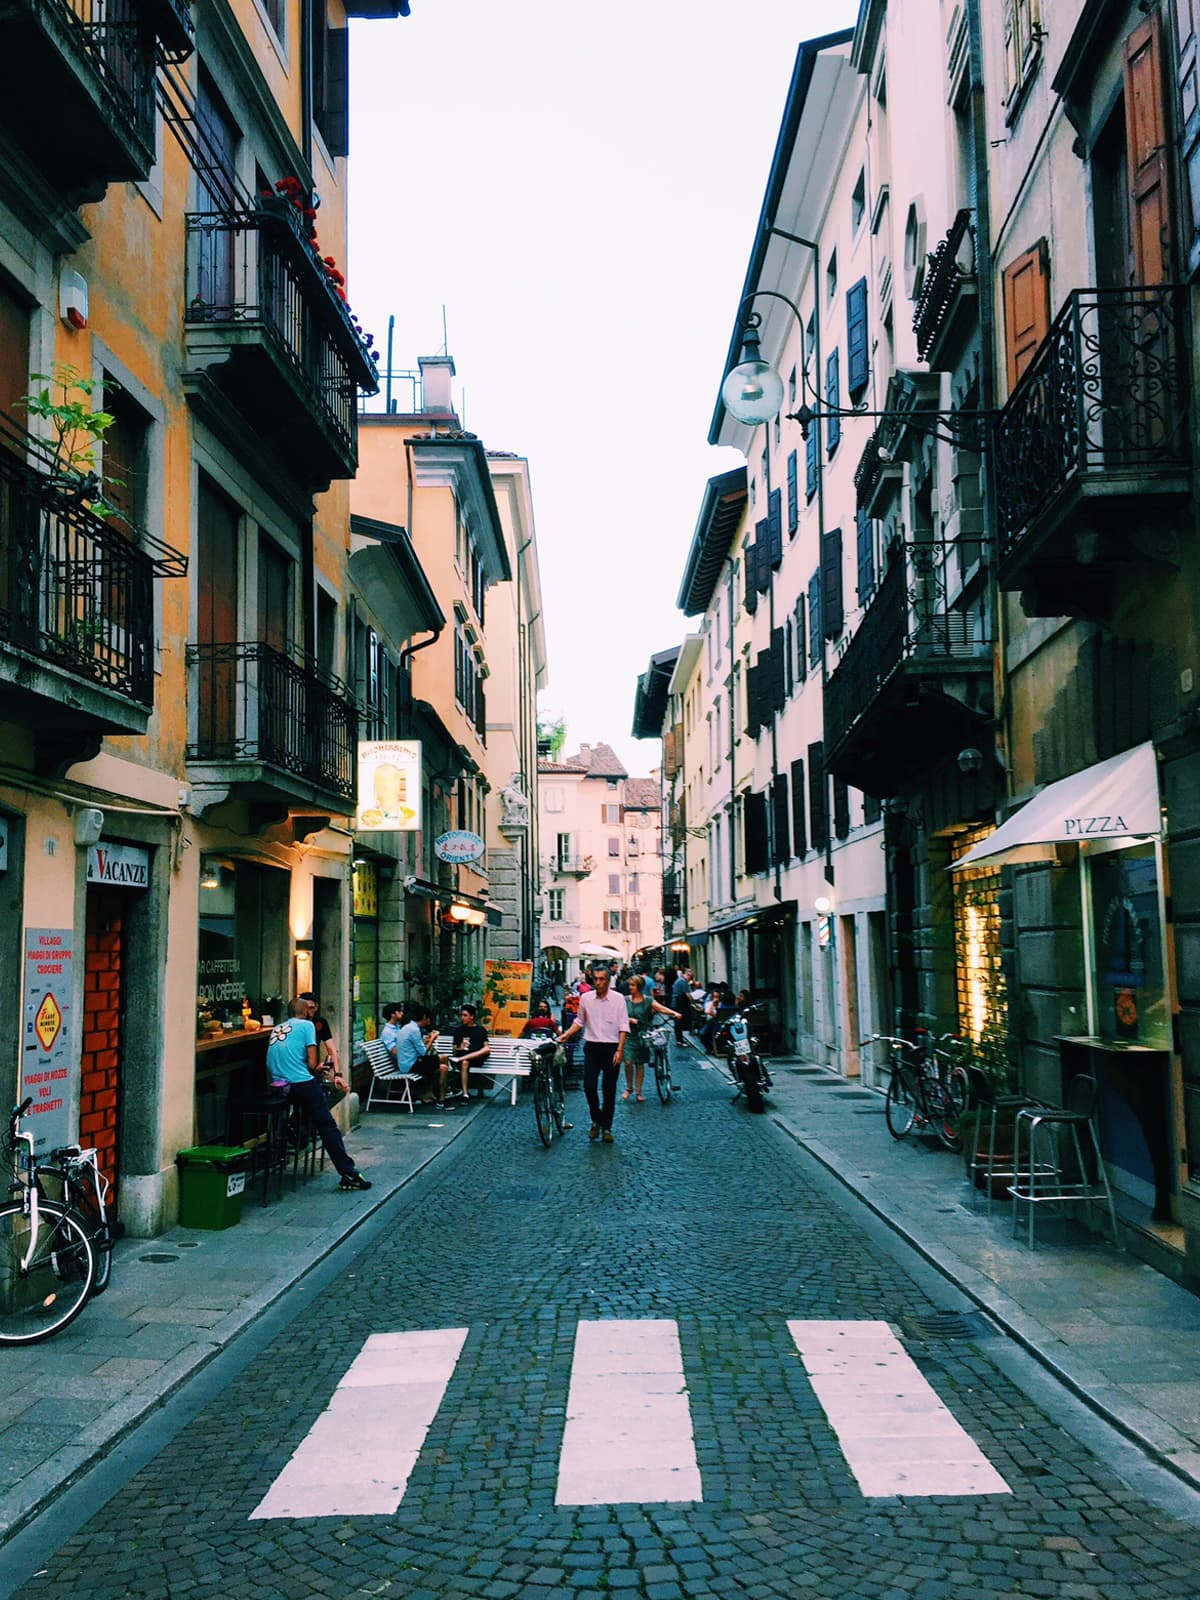 A street named Via Pelliccerie in the centre of Udine, Italy